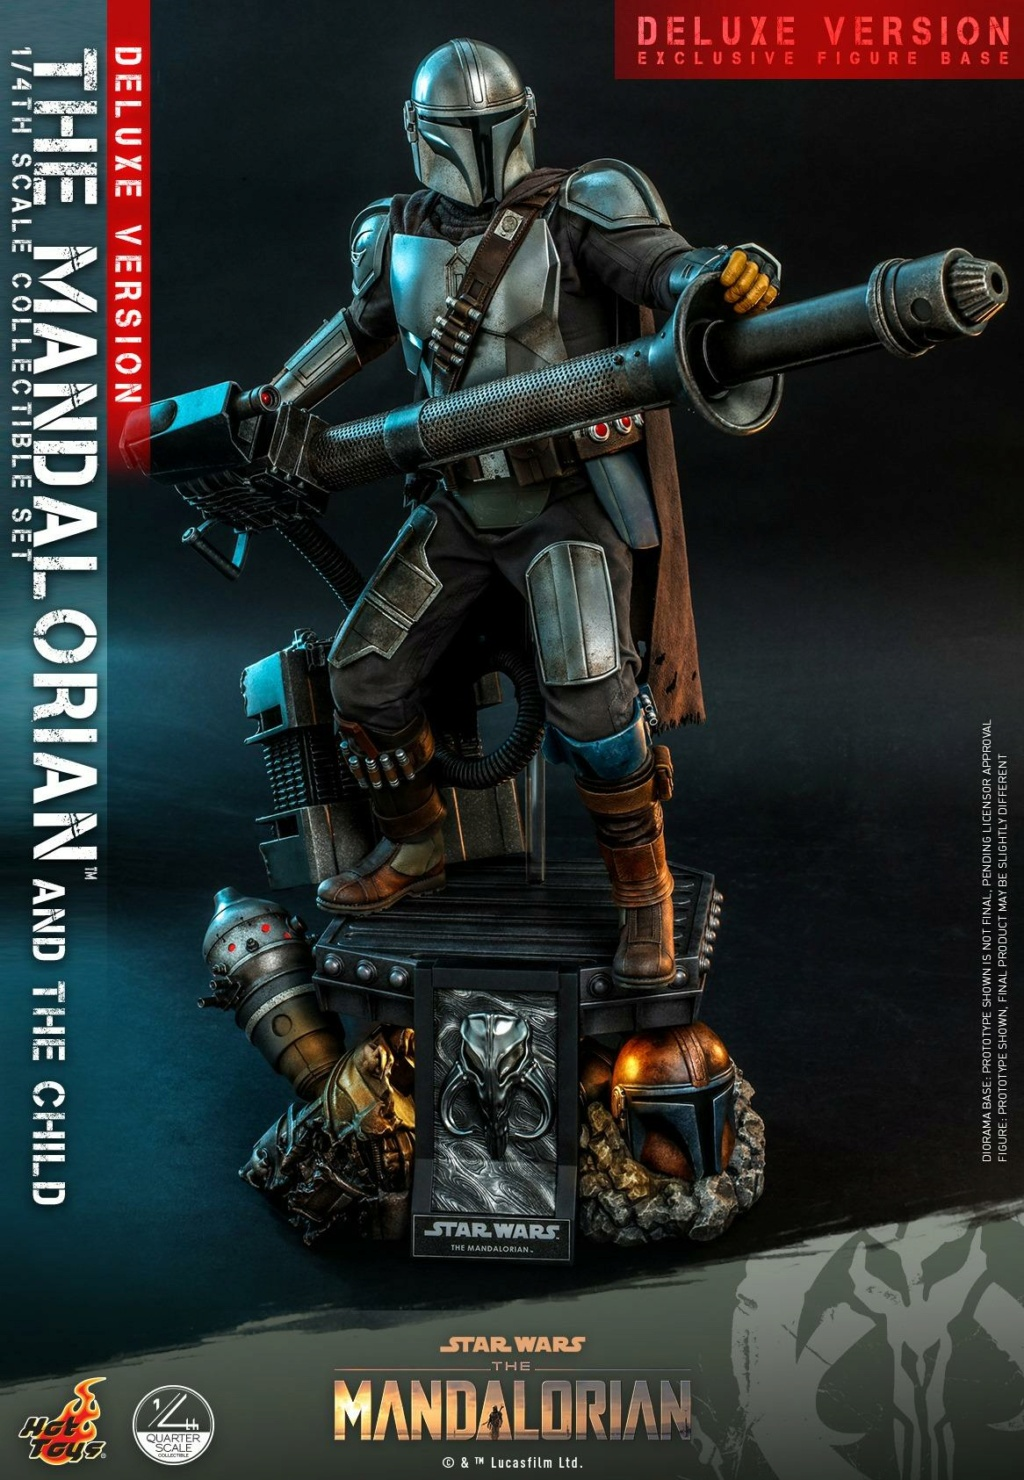 The Mandalorian & The Child Set (Deluxe) 1/4th - Hot Toys 1525